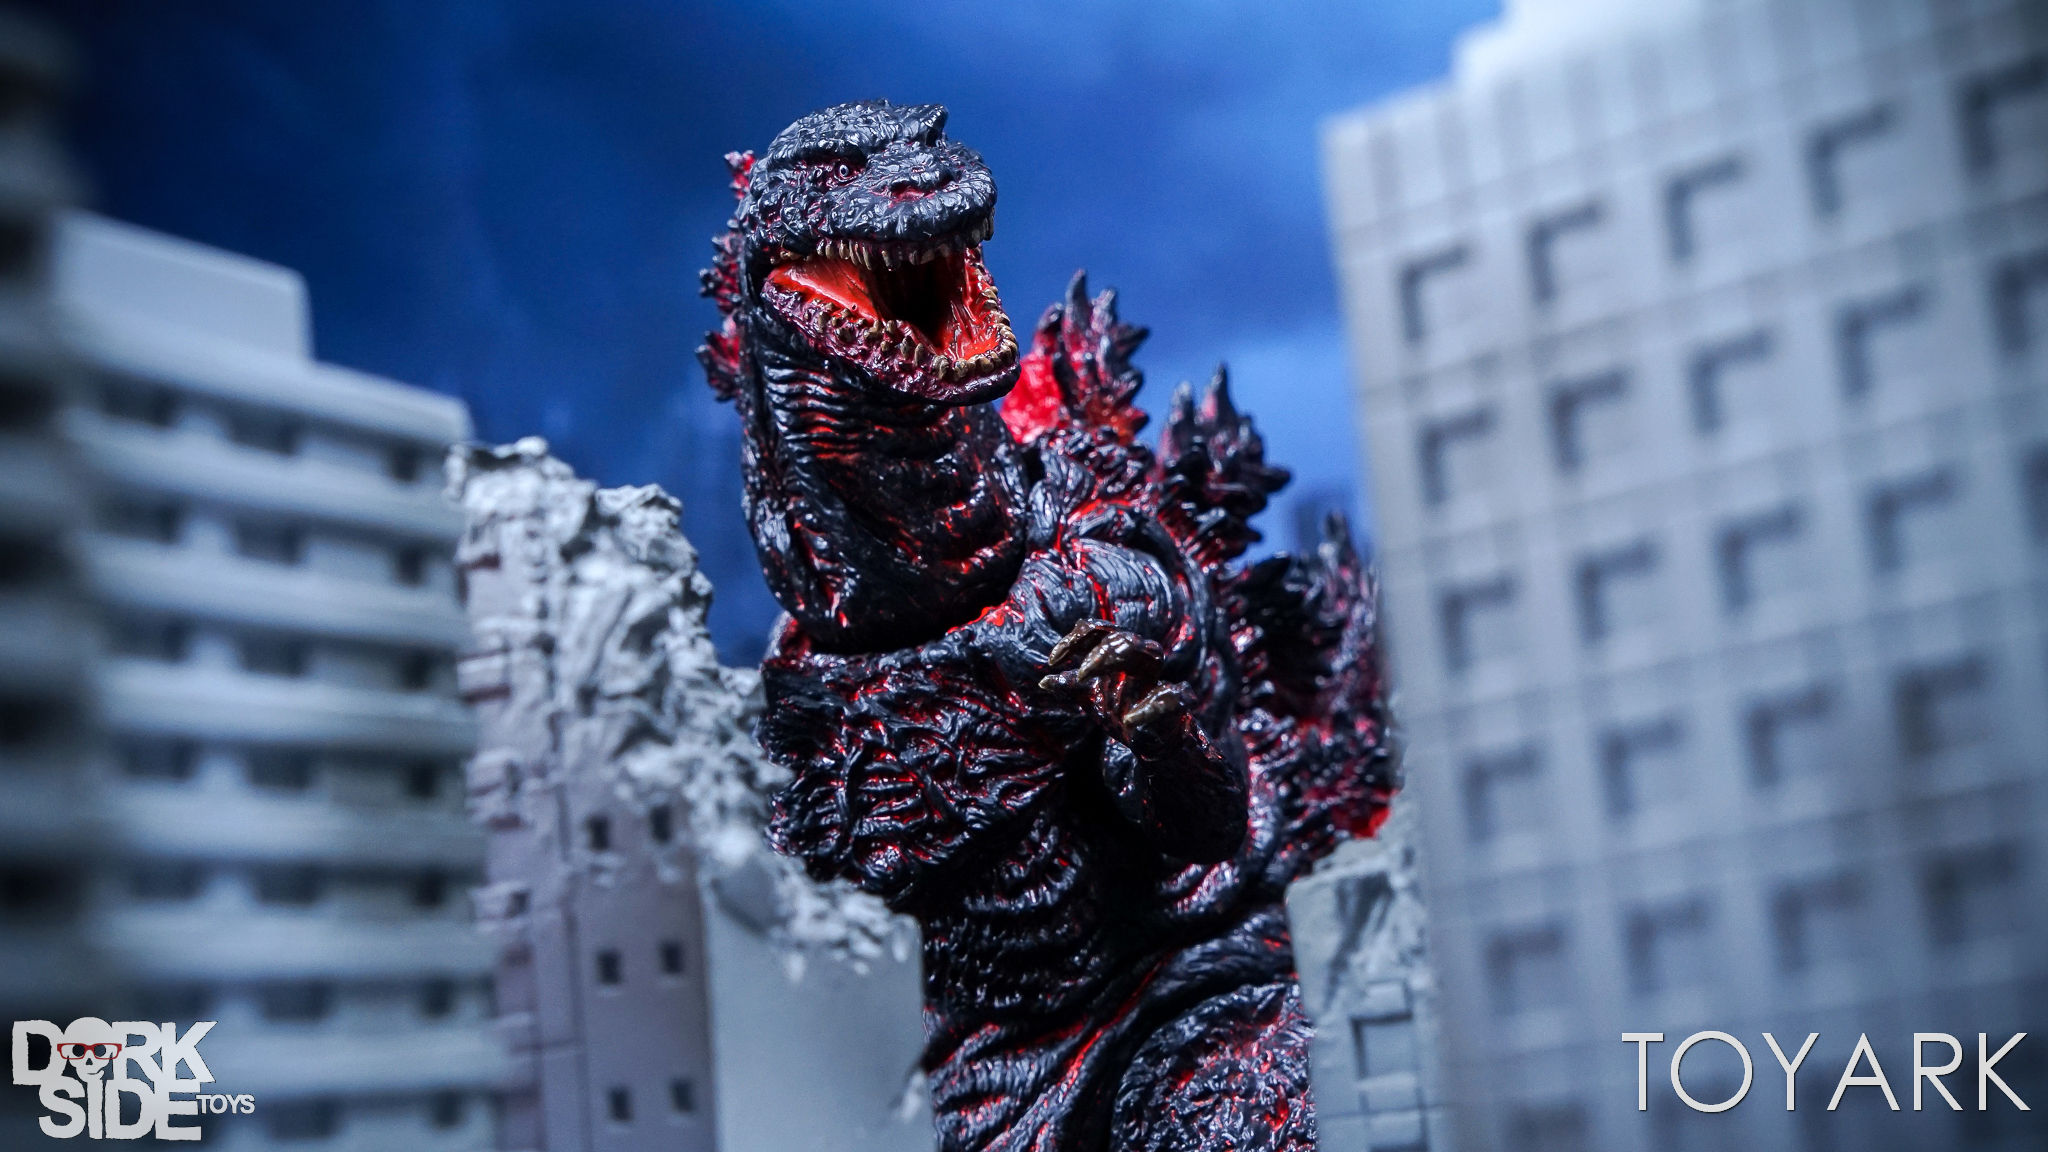 http://news.toyark.com/wp-content/uploads/sites/4/2017/05/Shin-Godzilla-Figure-NECA-031.jpg